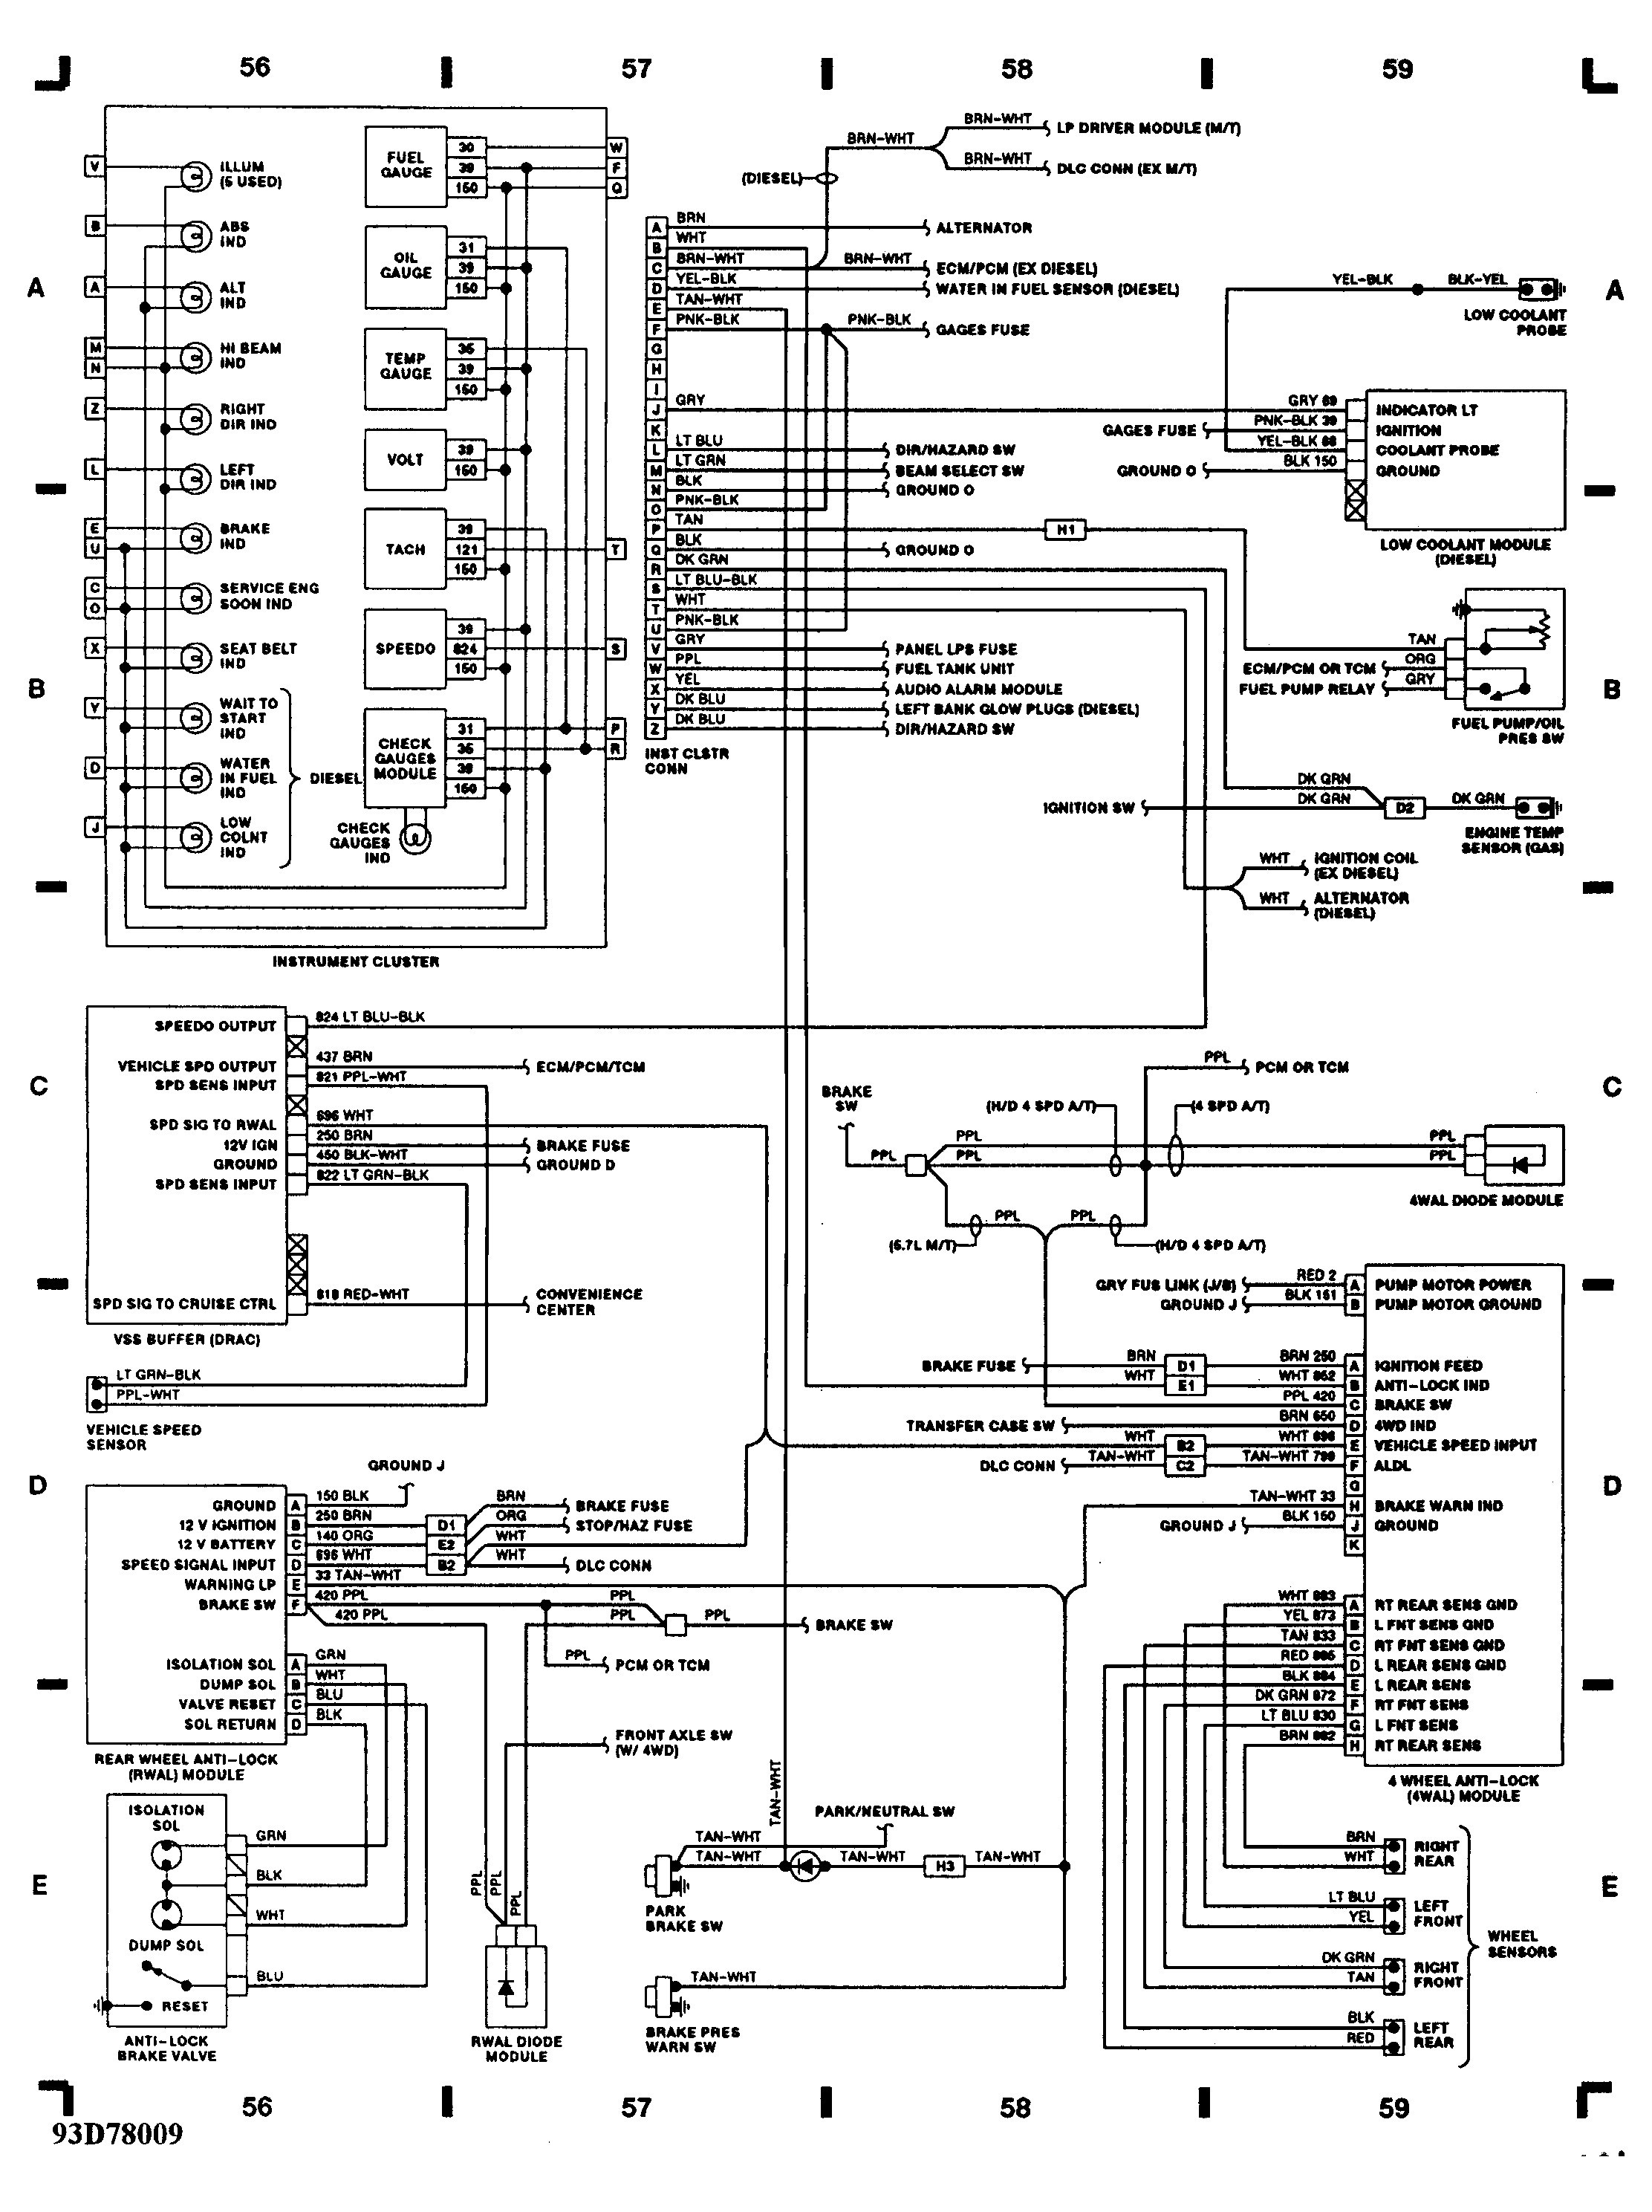 Car Engine Diagram Gif Mitsubishi Lancer Evo 8 Cars Pinterest My Wiring Diagrams 5 7 Vortec 4 3l